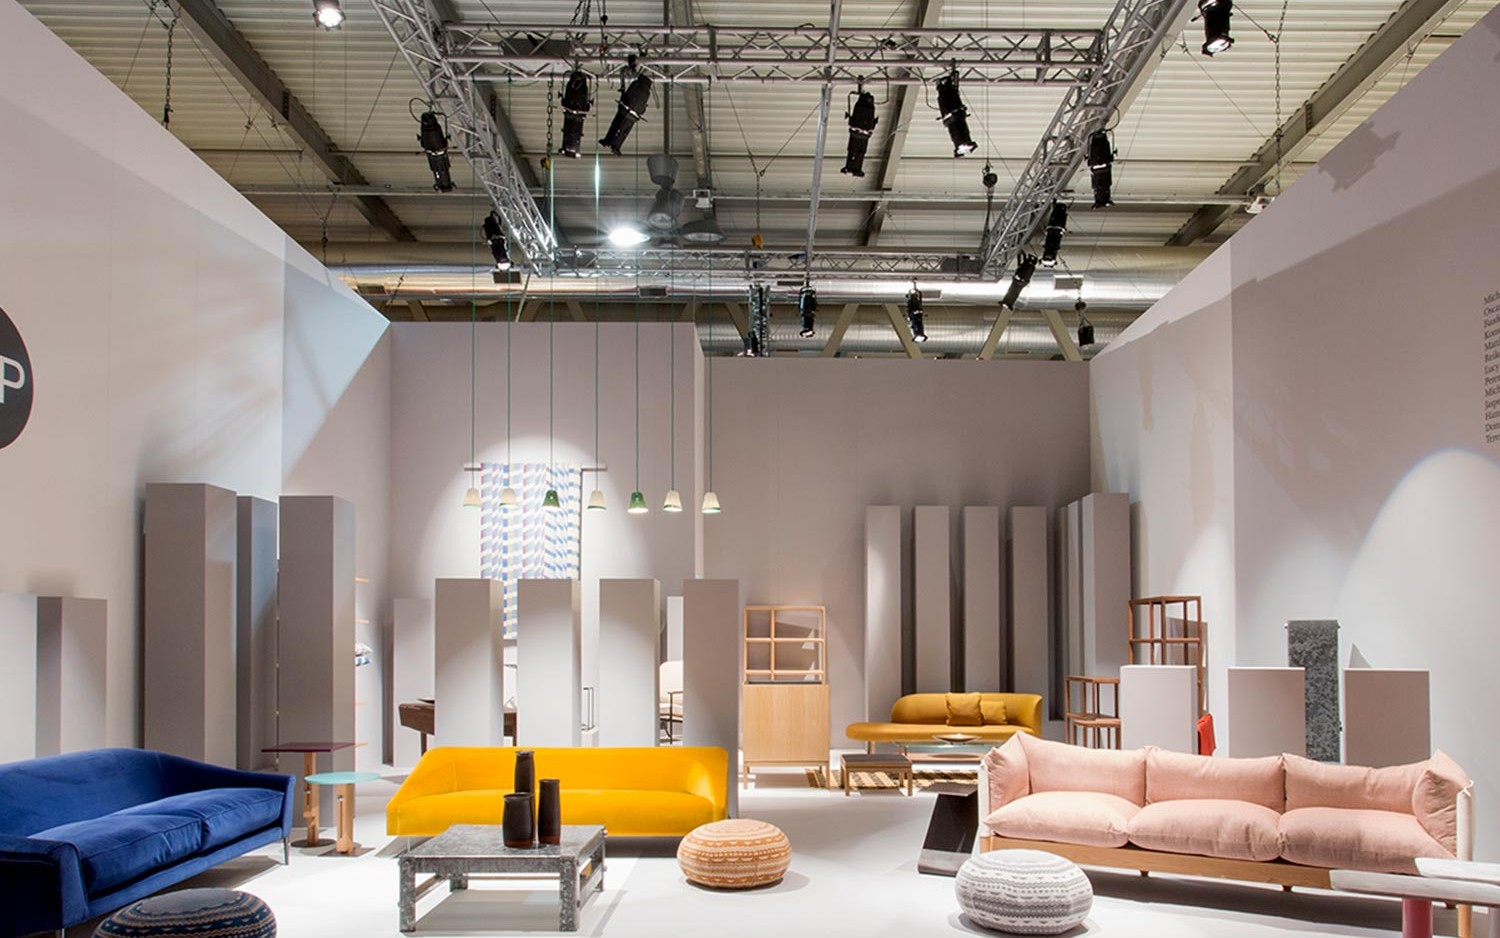 Salone del mobile milano 2016 scp life for Salone del mobile milano 2016